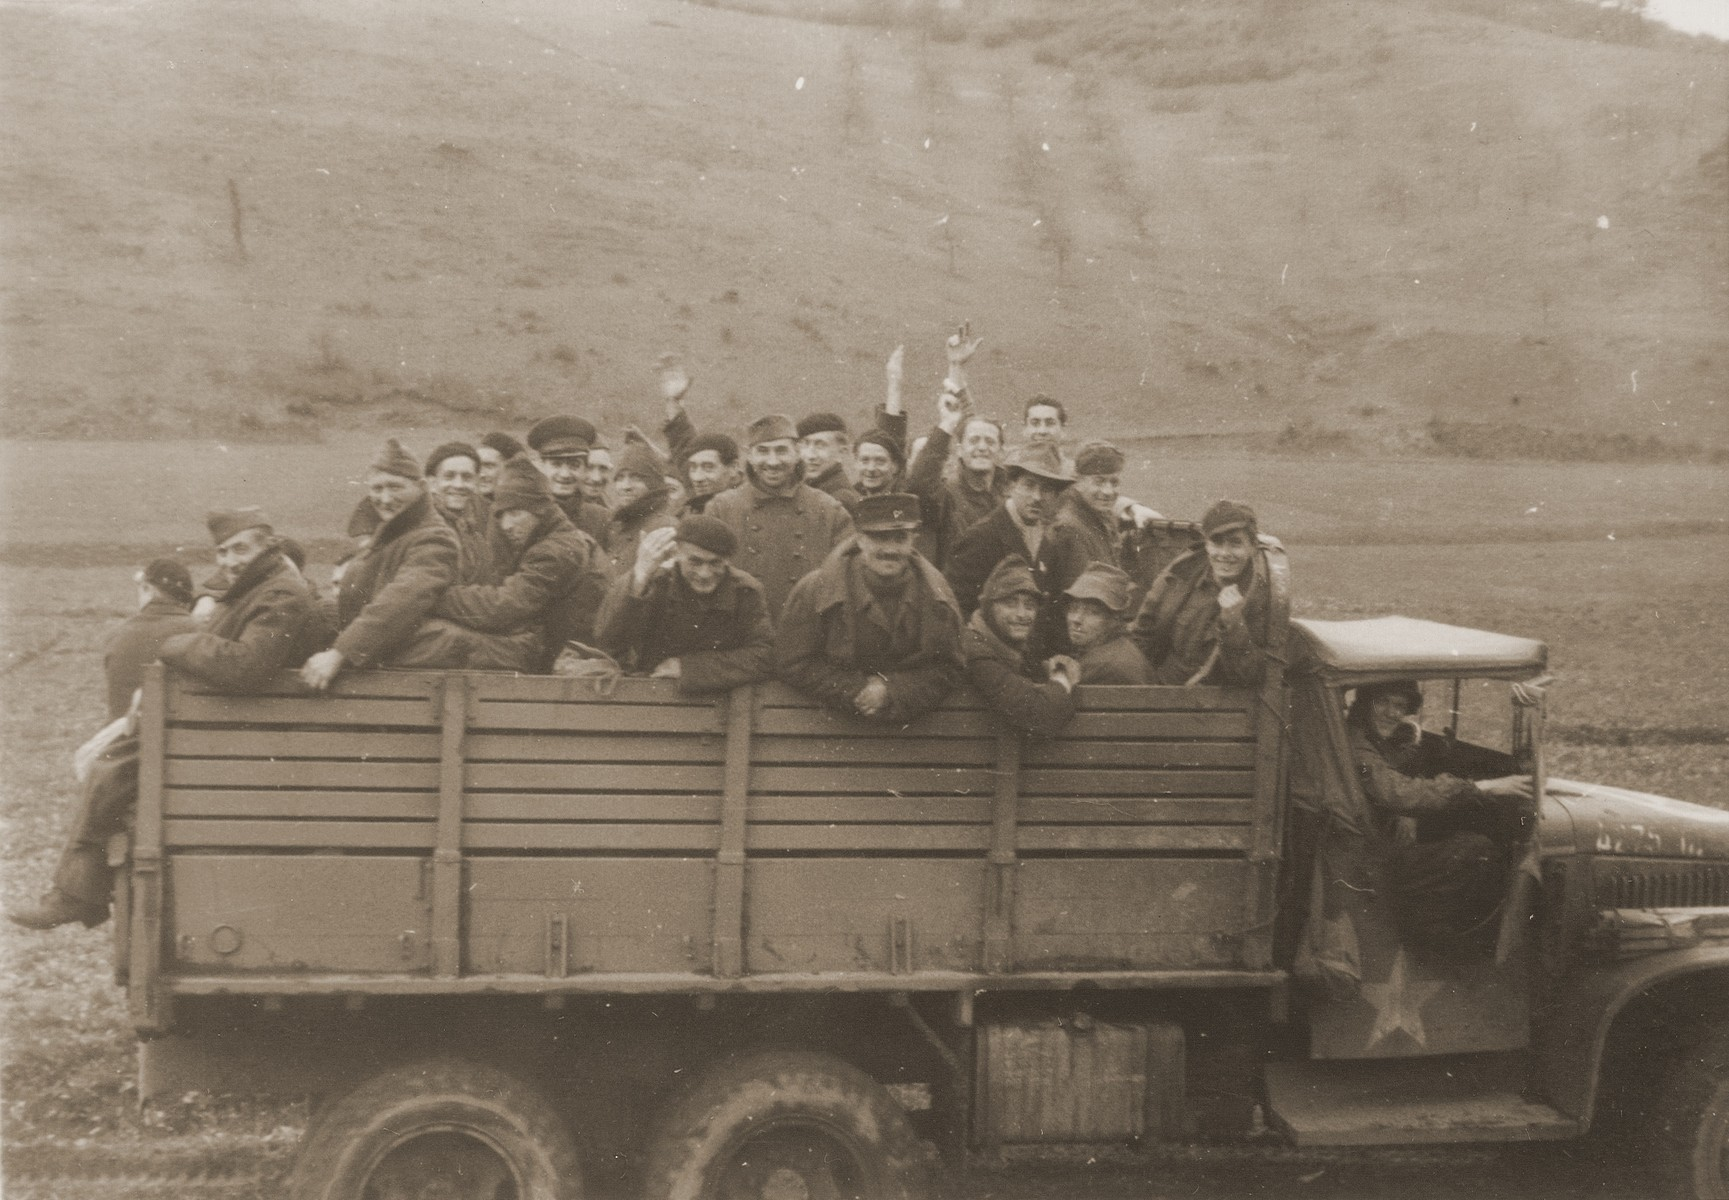 A truckload of displaced persons and concentration camp survivors are transported through the German countryside by American soldiers.